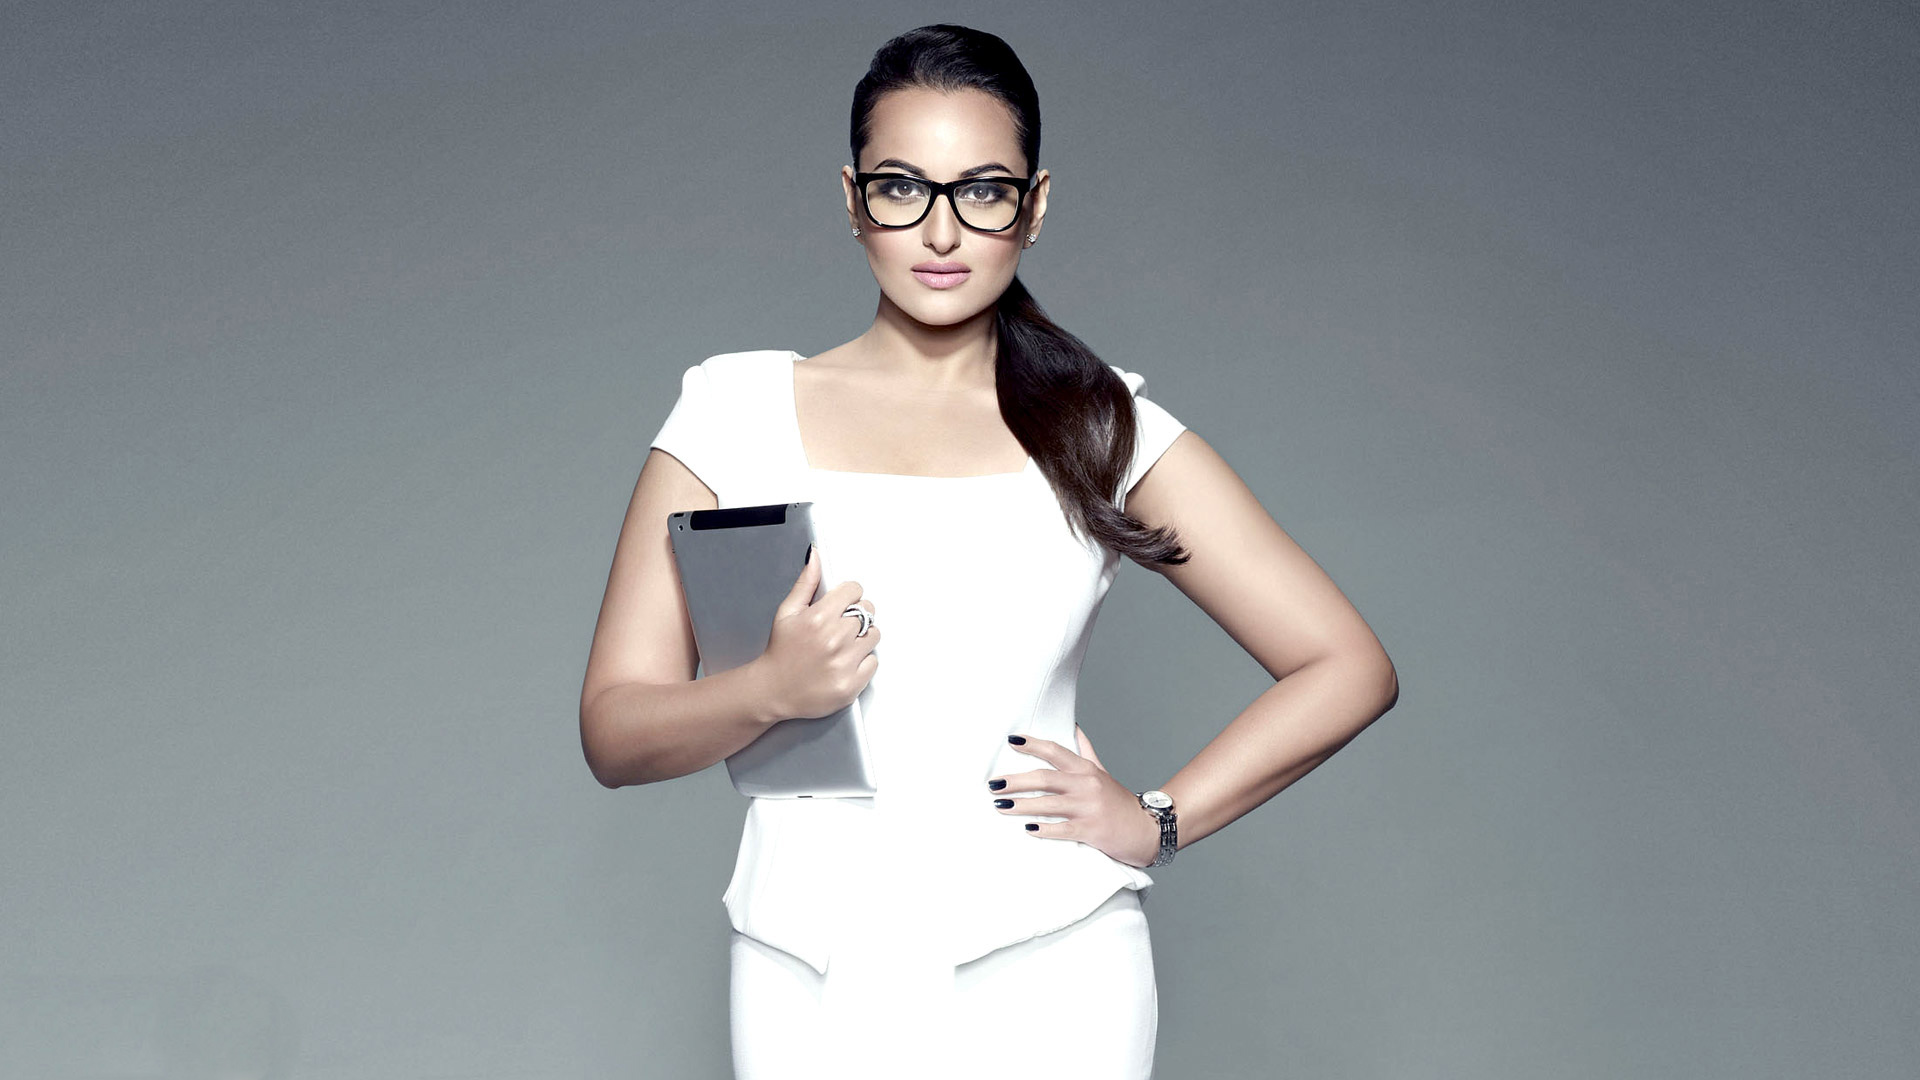 sonakshi sinha new classy wallpapers   facebook cover